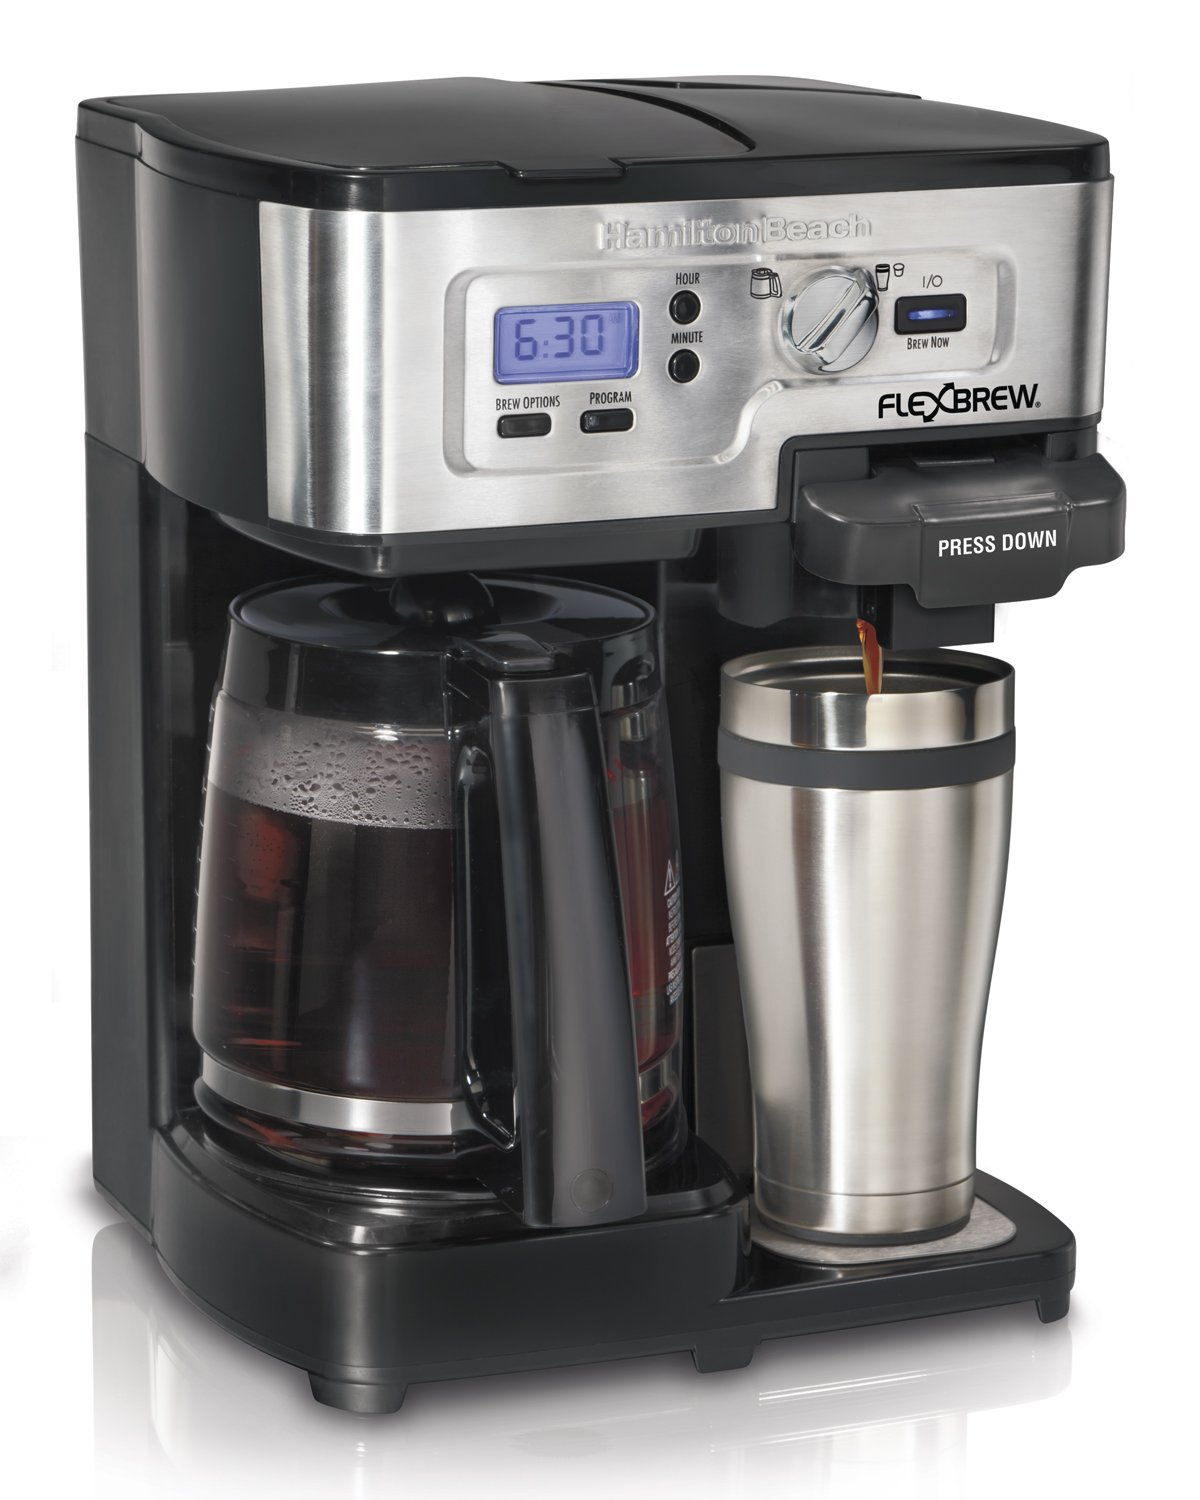 Hamilton Beach Single Serve Coffee Brewer and Full Pot Coffee Maker, FlexBrew (49983A)